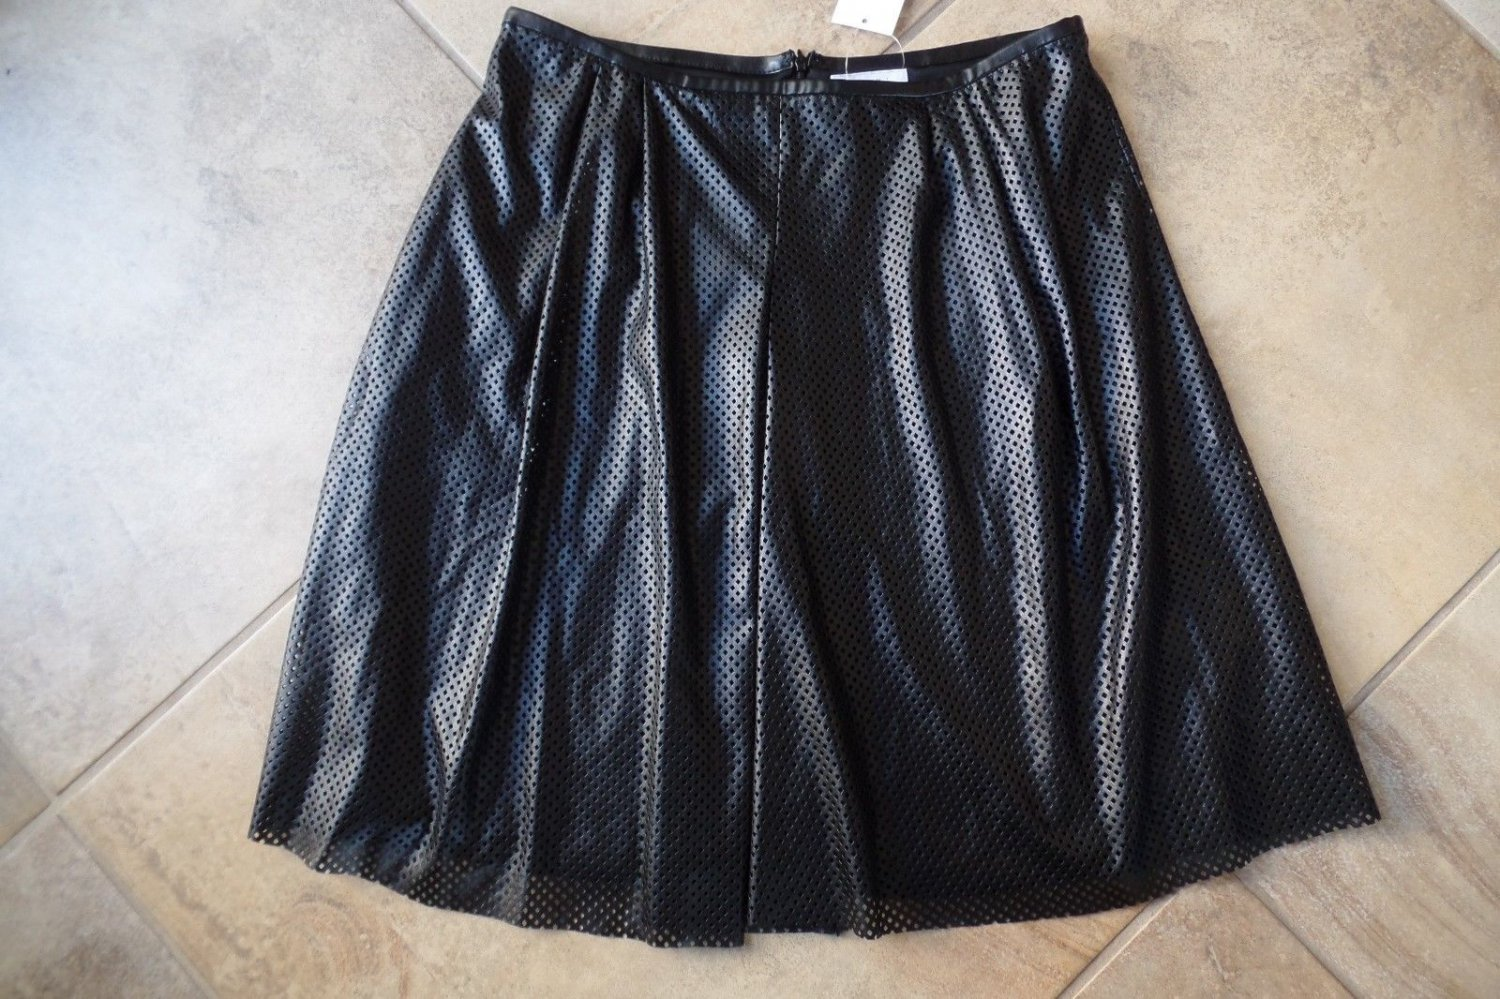 NWT CALVIN KLEIN  Black Perforated Faux Leather A Line  Skirt 10